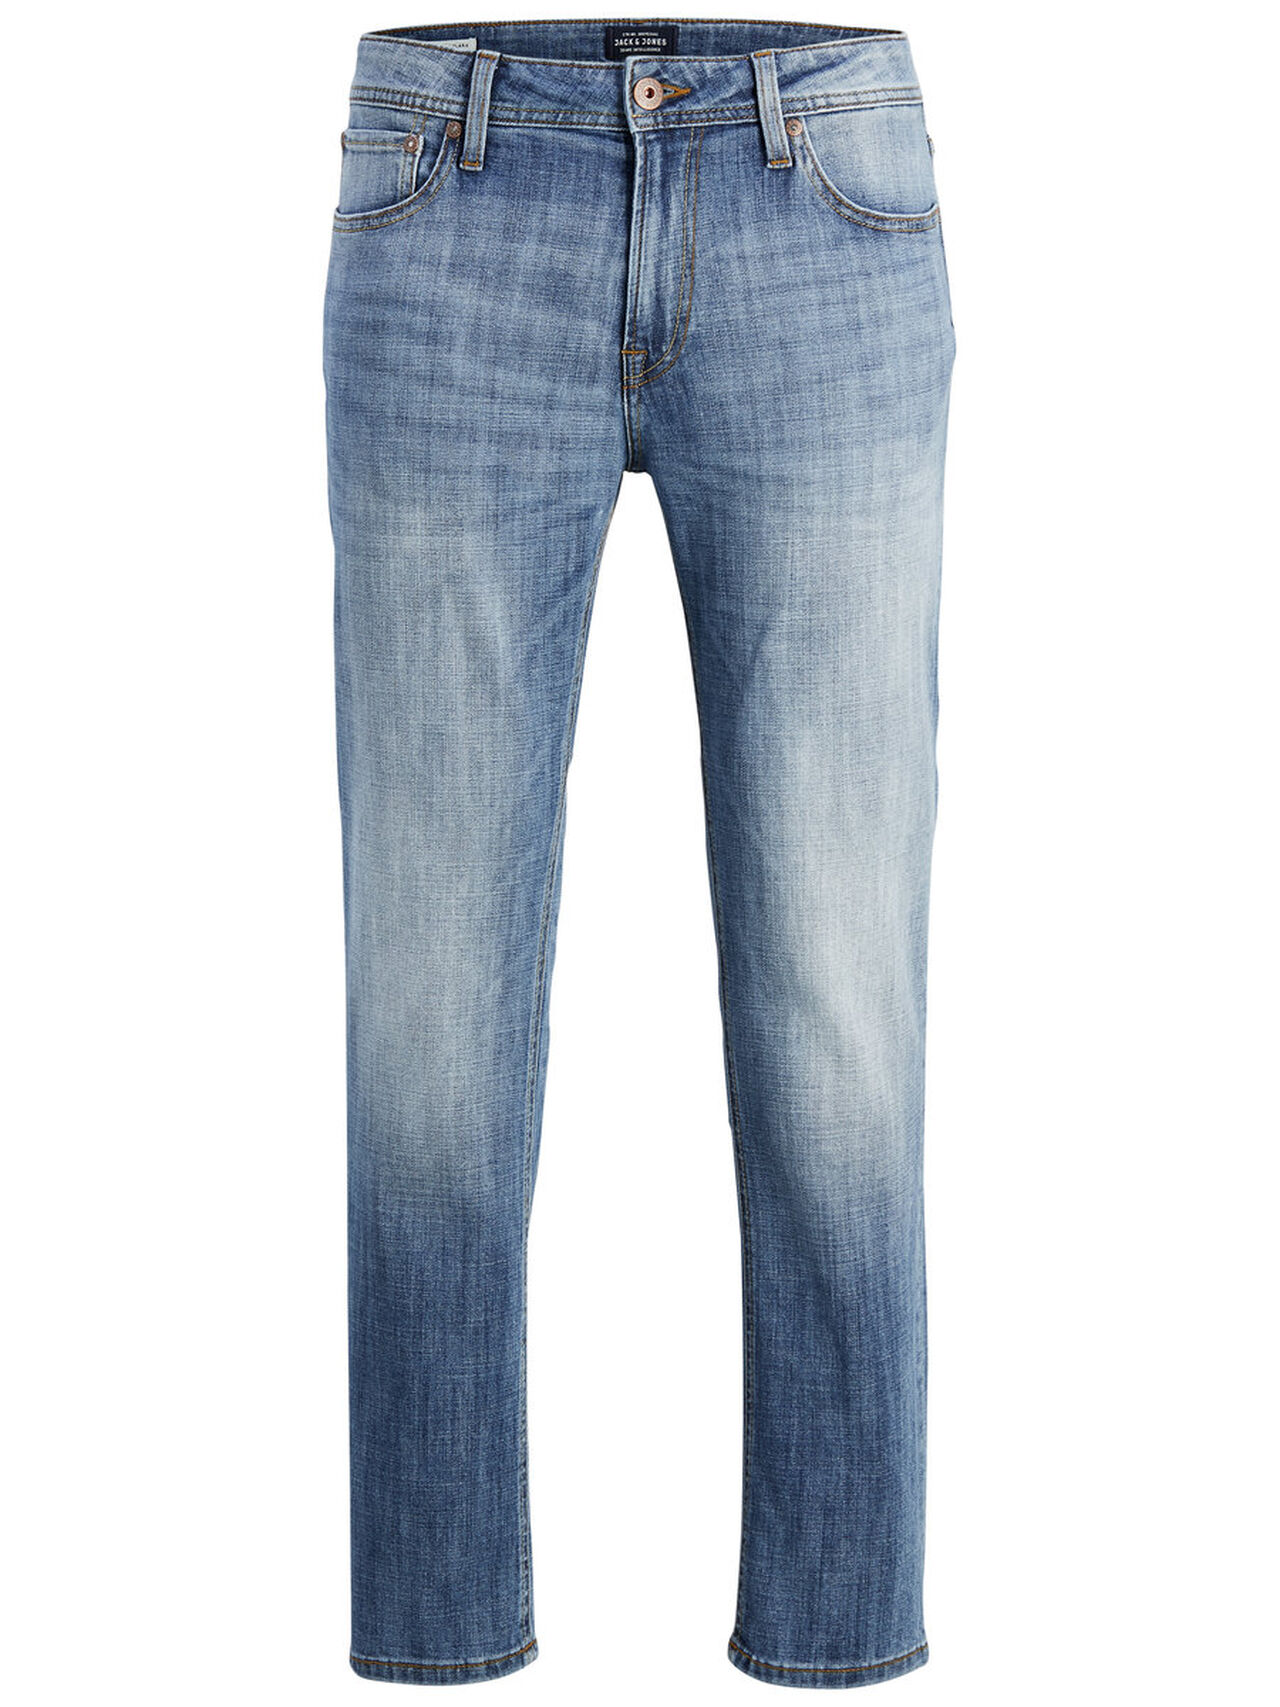 Clark Original Ge 257 Regular Fit Jeans